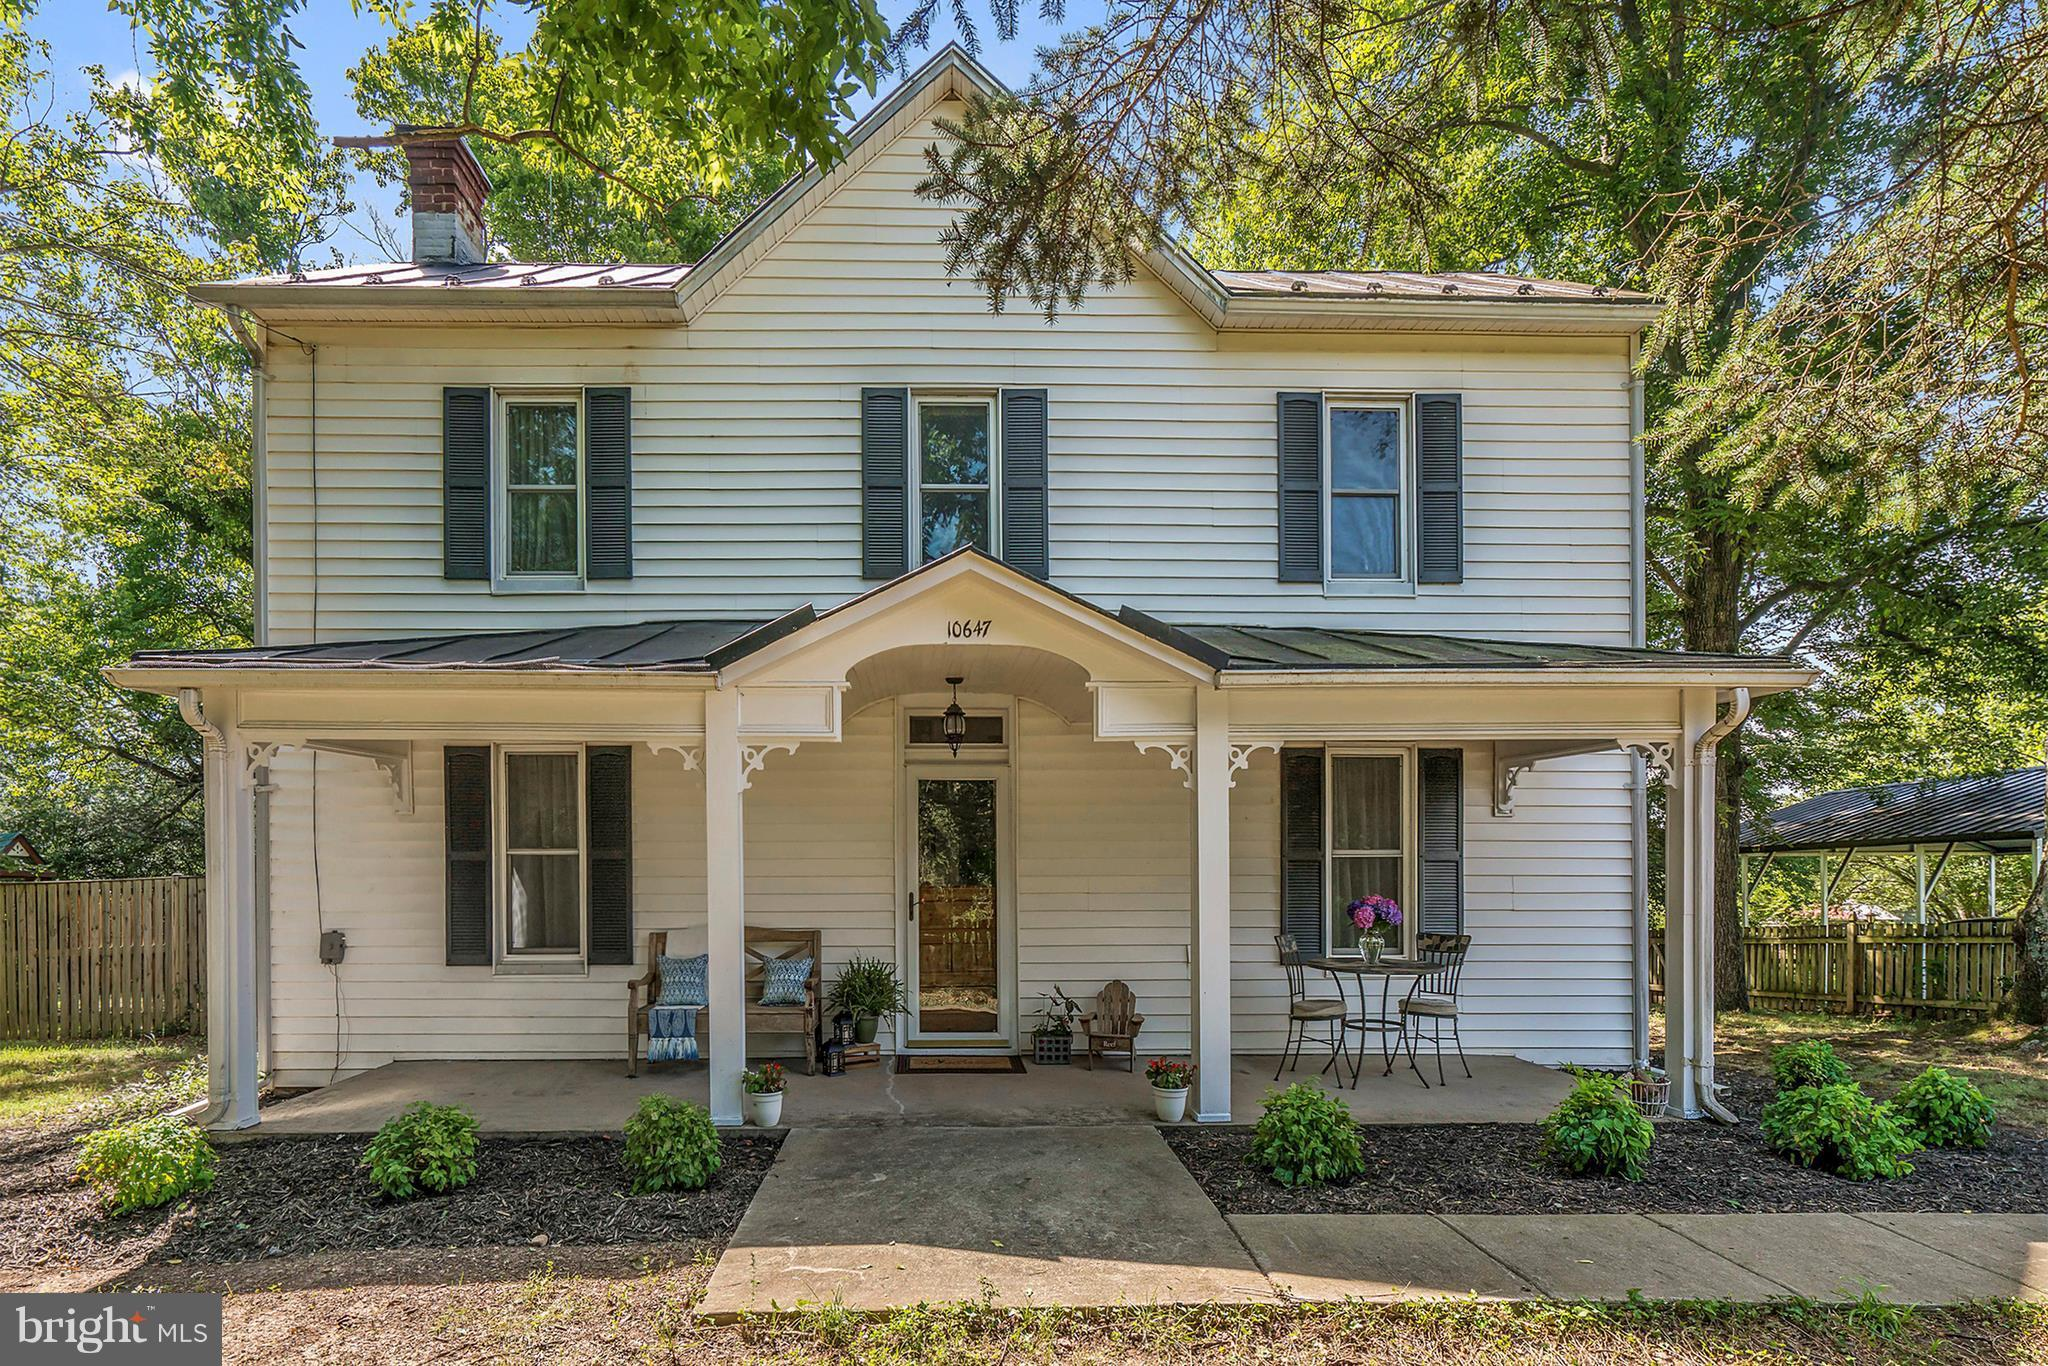 10647 ROGUES ROAD, MIDLAND, VA 22728